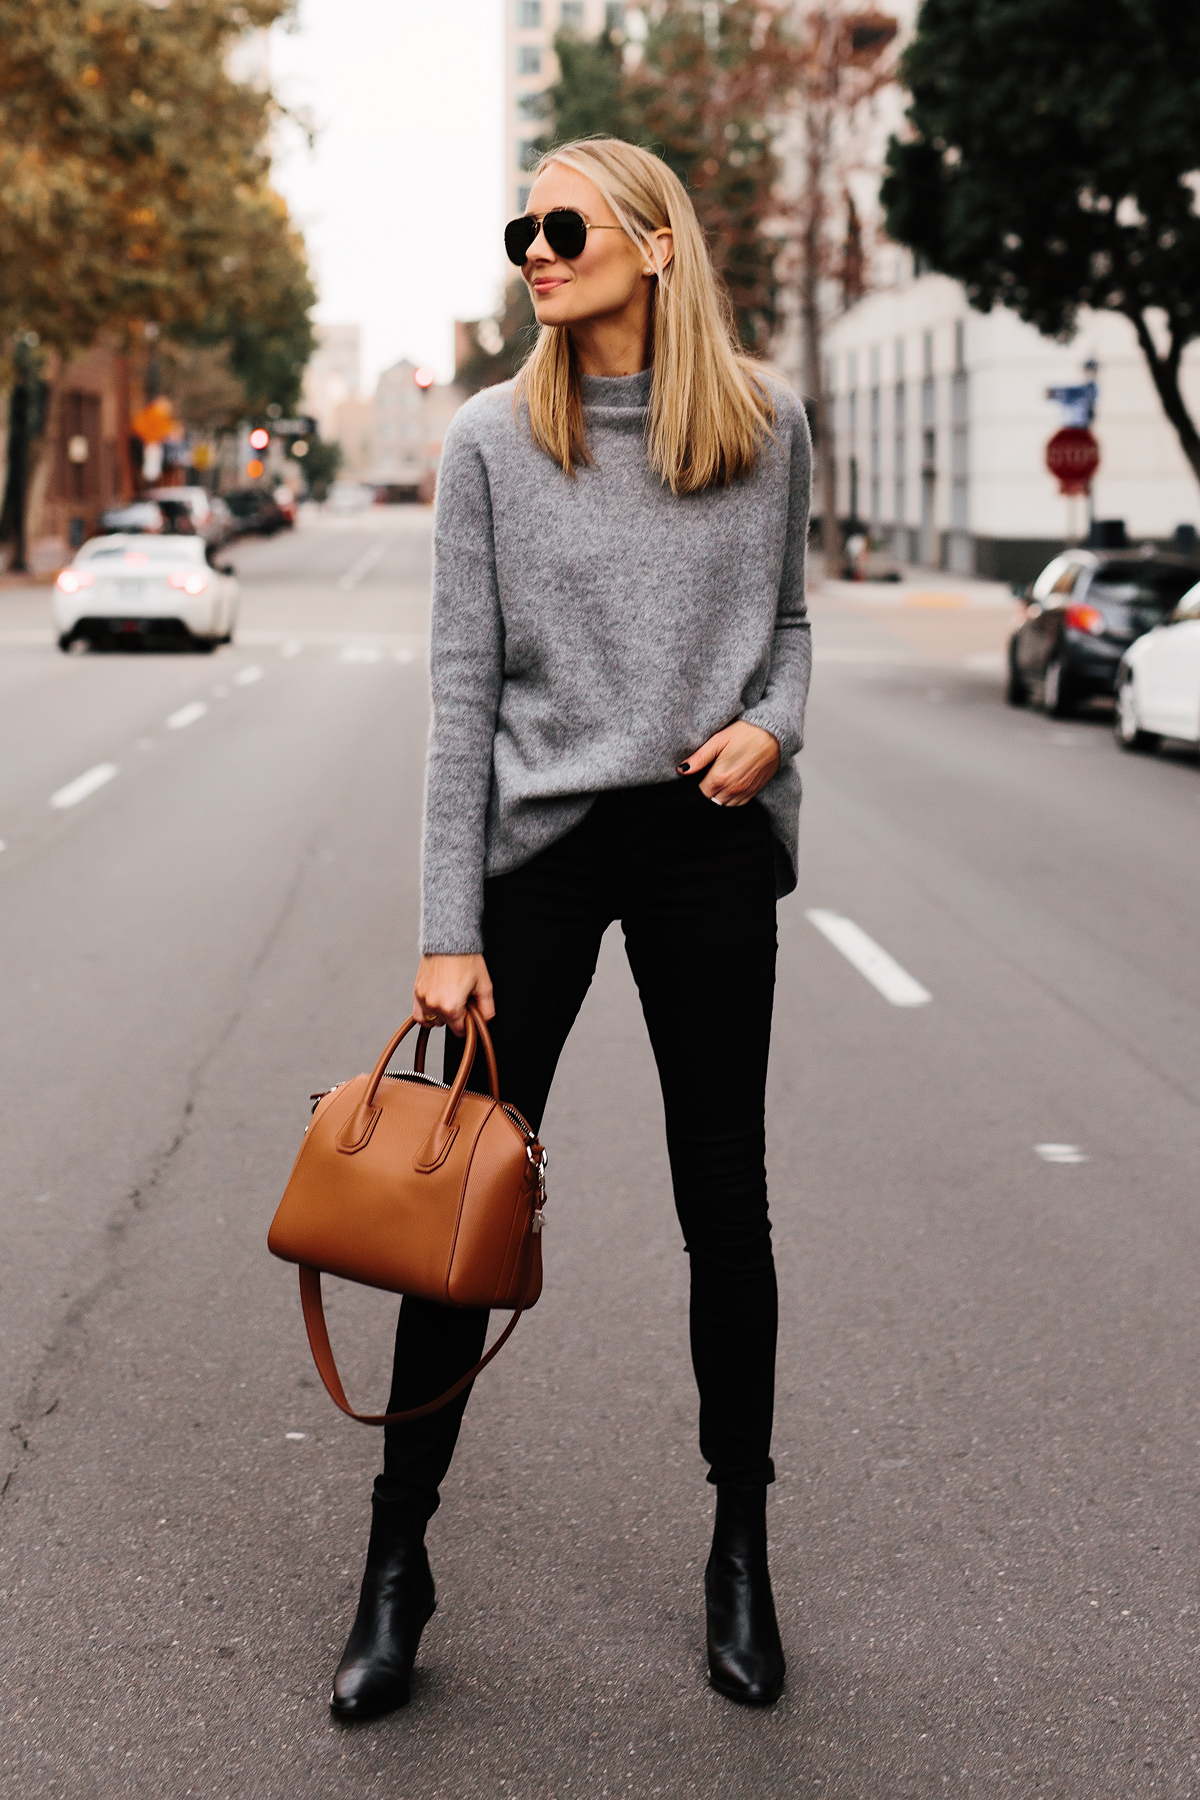 Fashion Jackson Bloomingdales Grey Cashmere Mock Neck Sweater Black Skinny Jeans Black Booties Outfit Tan Satchel Handbag Aviator Sunglasses